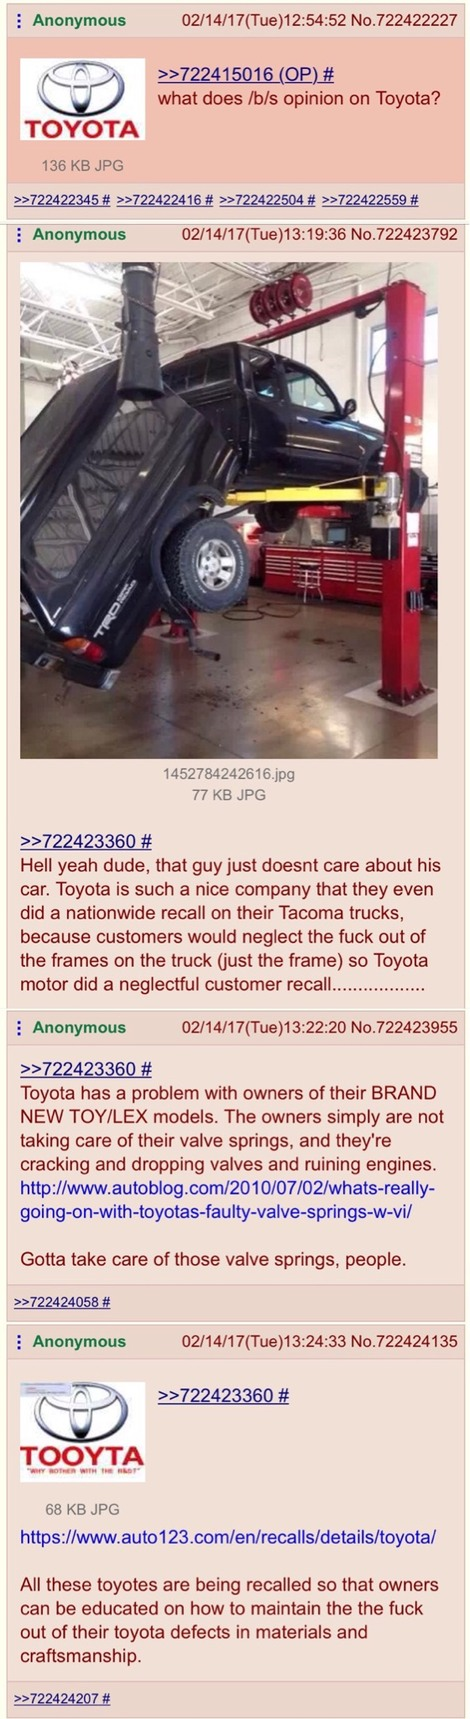 guess /b/ doesn't like Toyota - meme